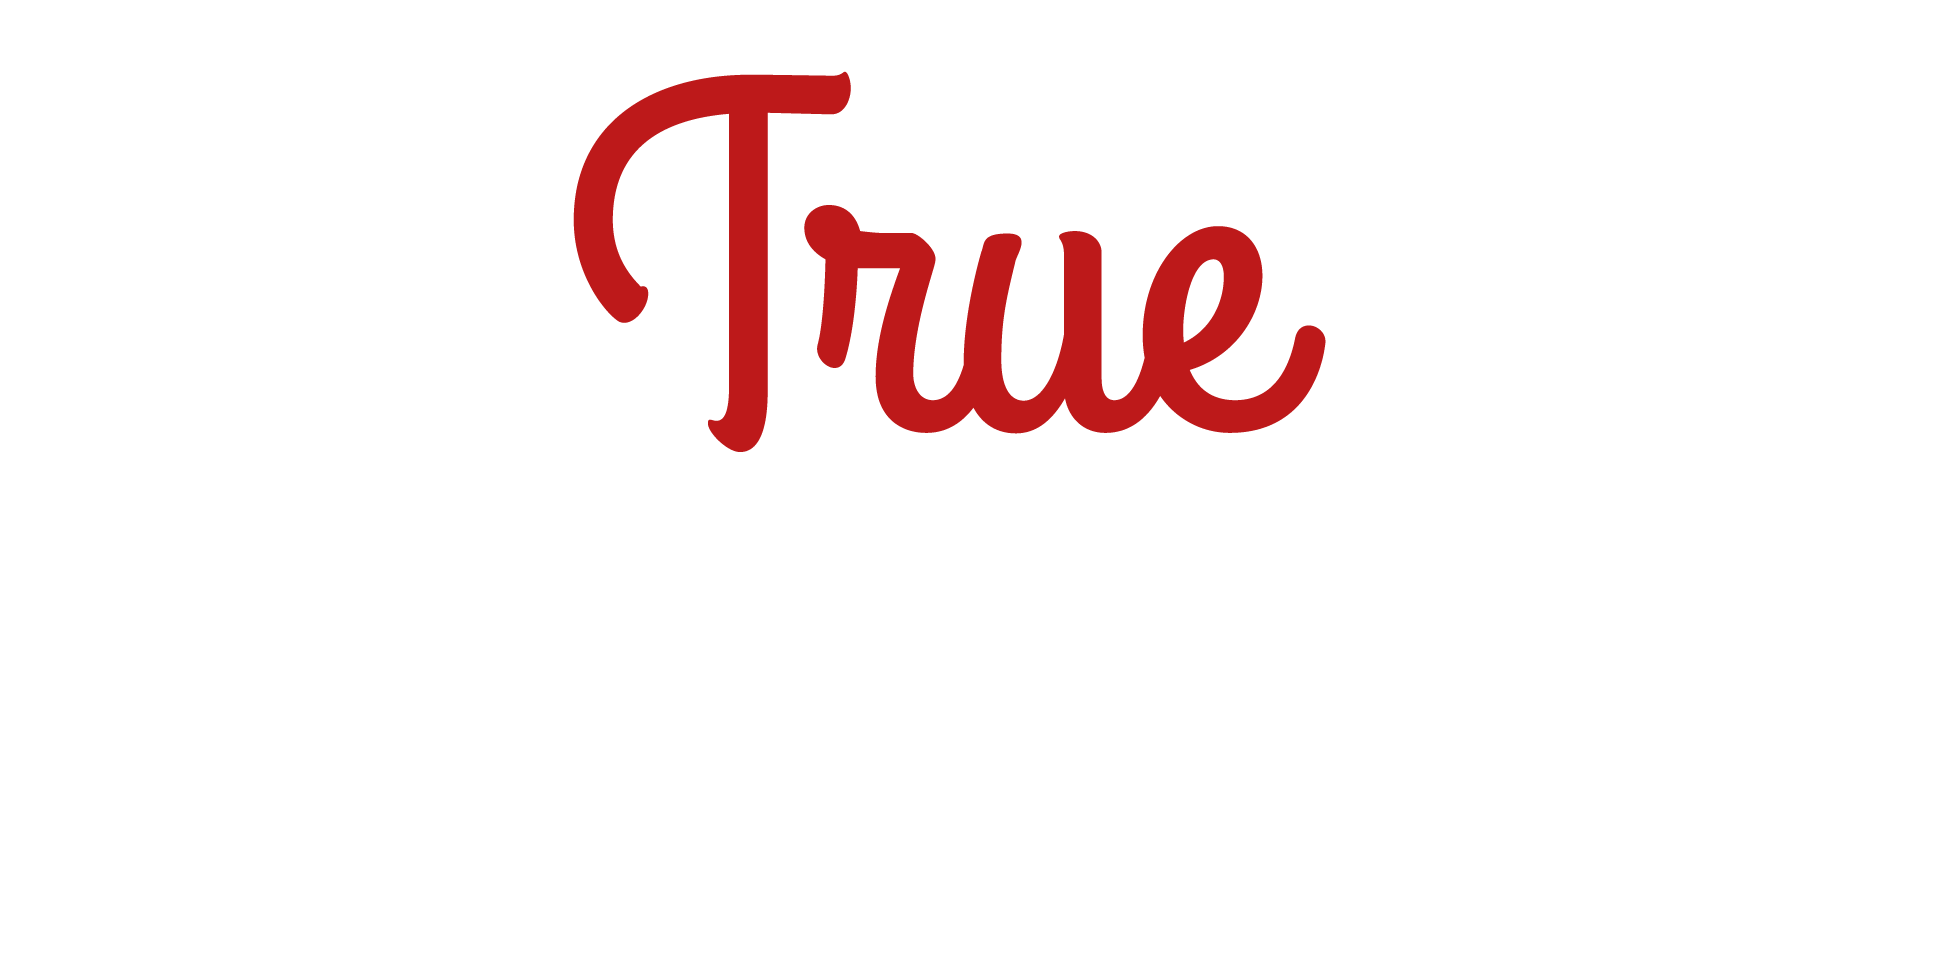 true carnivores footer logo white and red